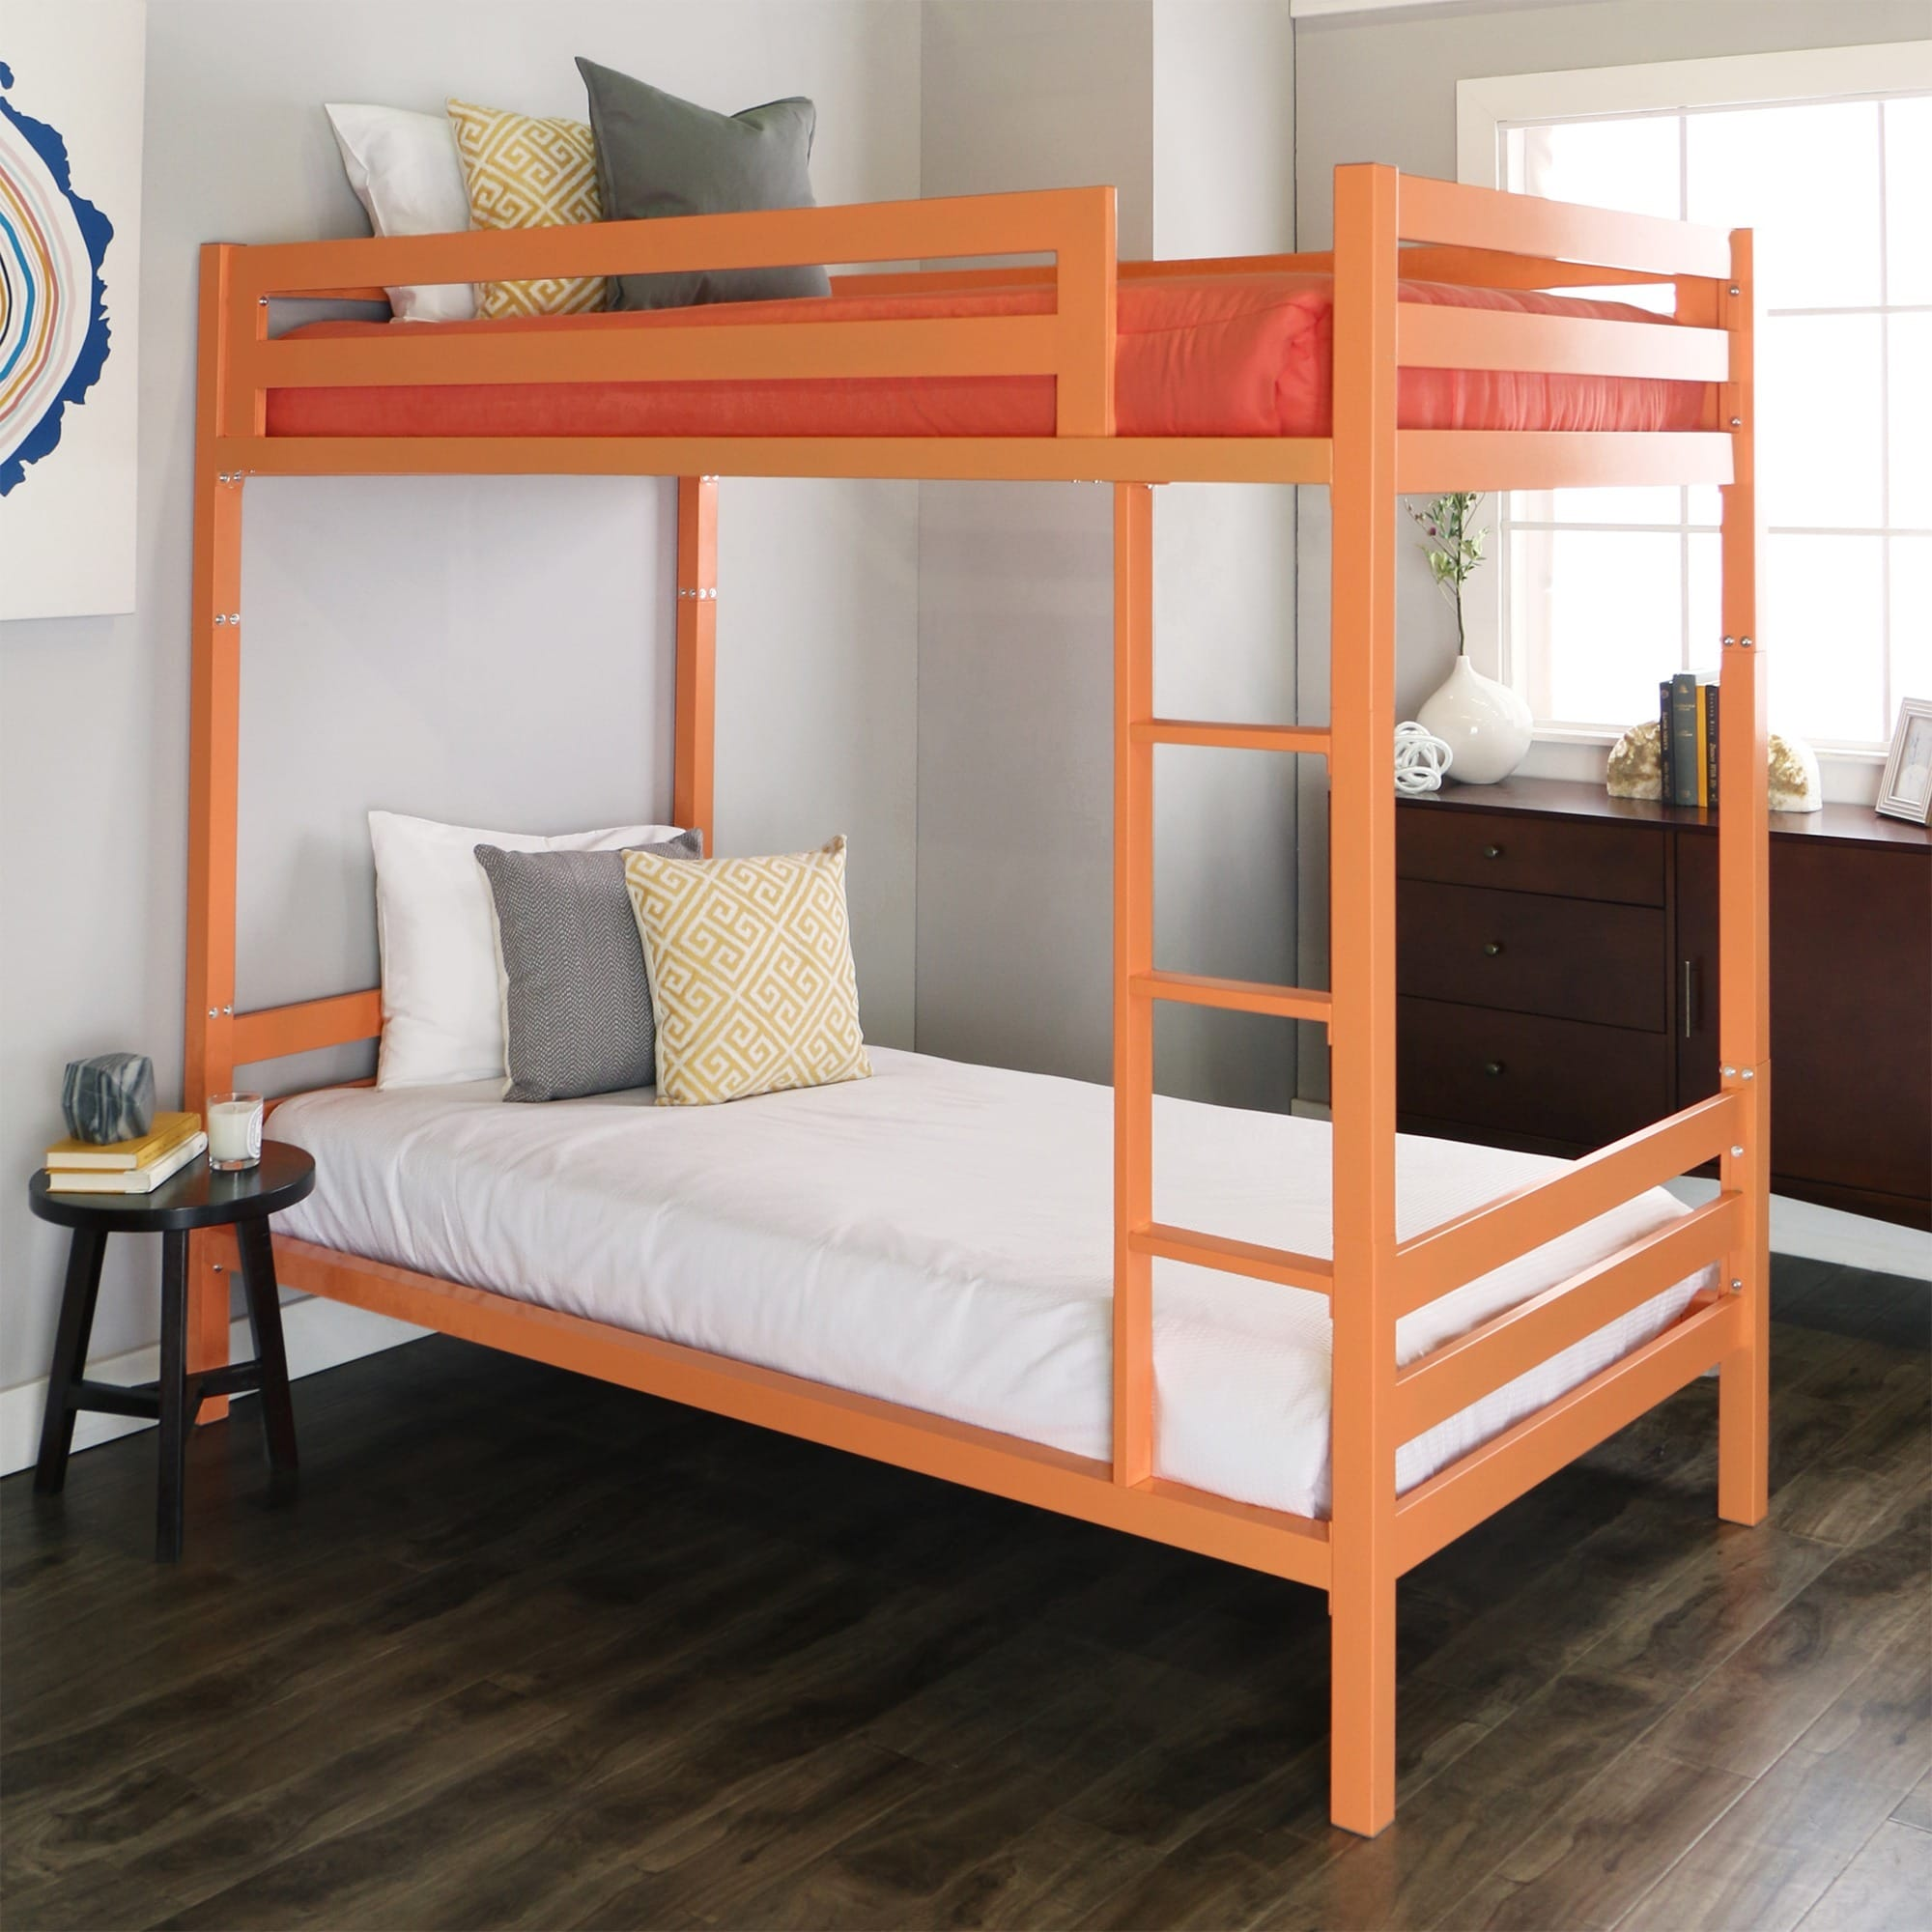 WE Furniture Twin over Twin Metal Bunk Bed - Coral